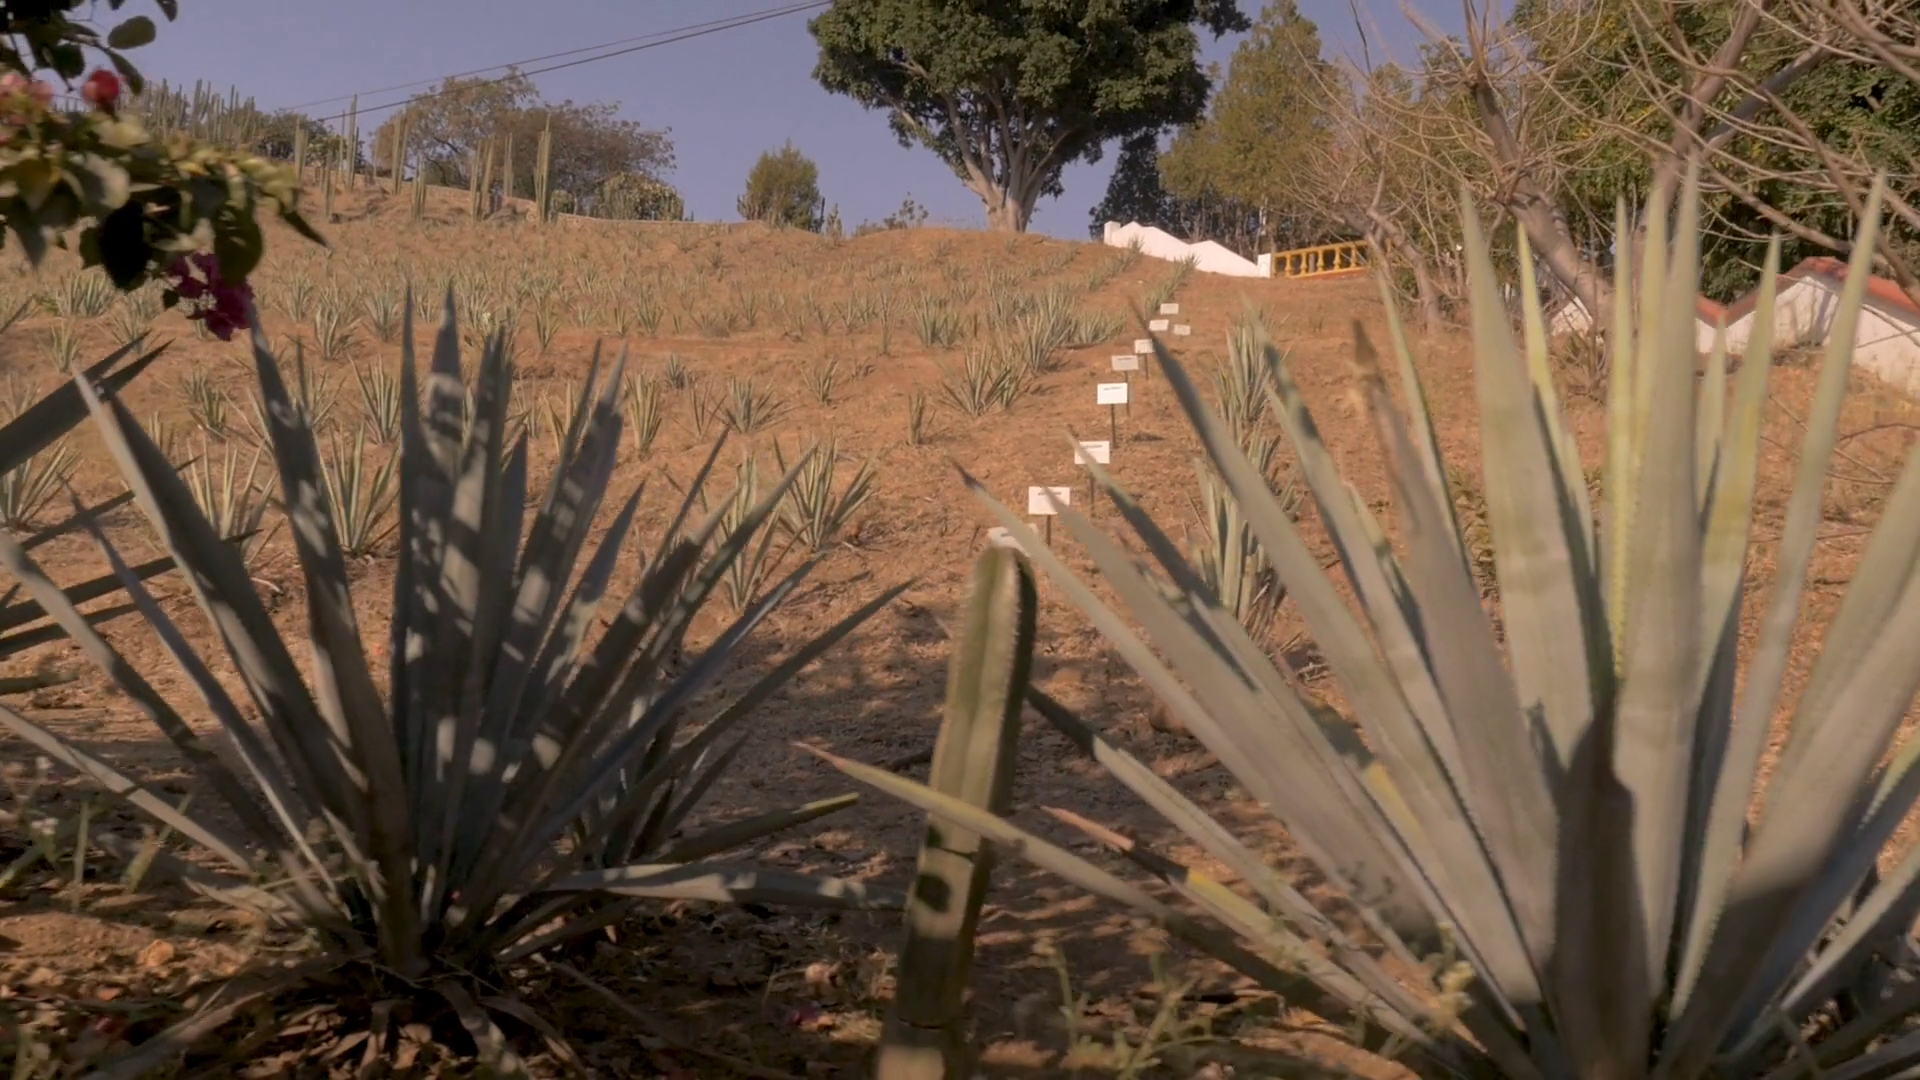 How To Make Tequila Blue Agave Plants